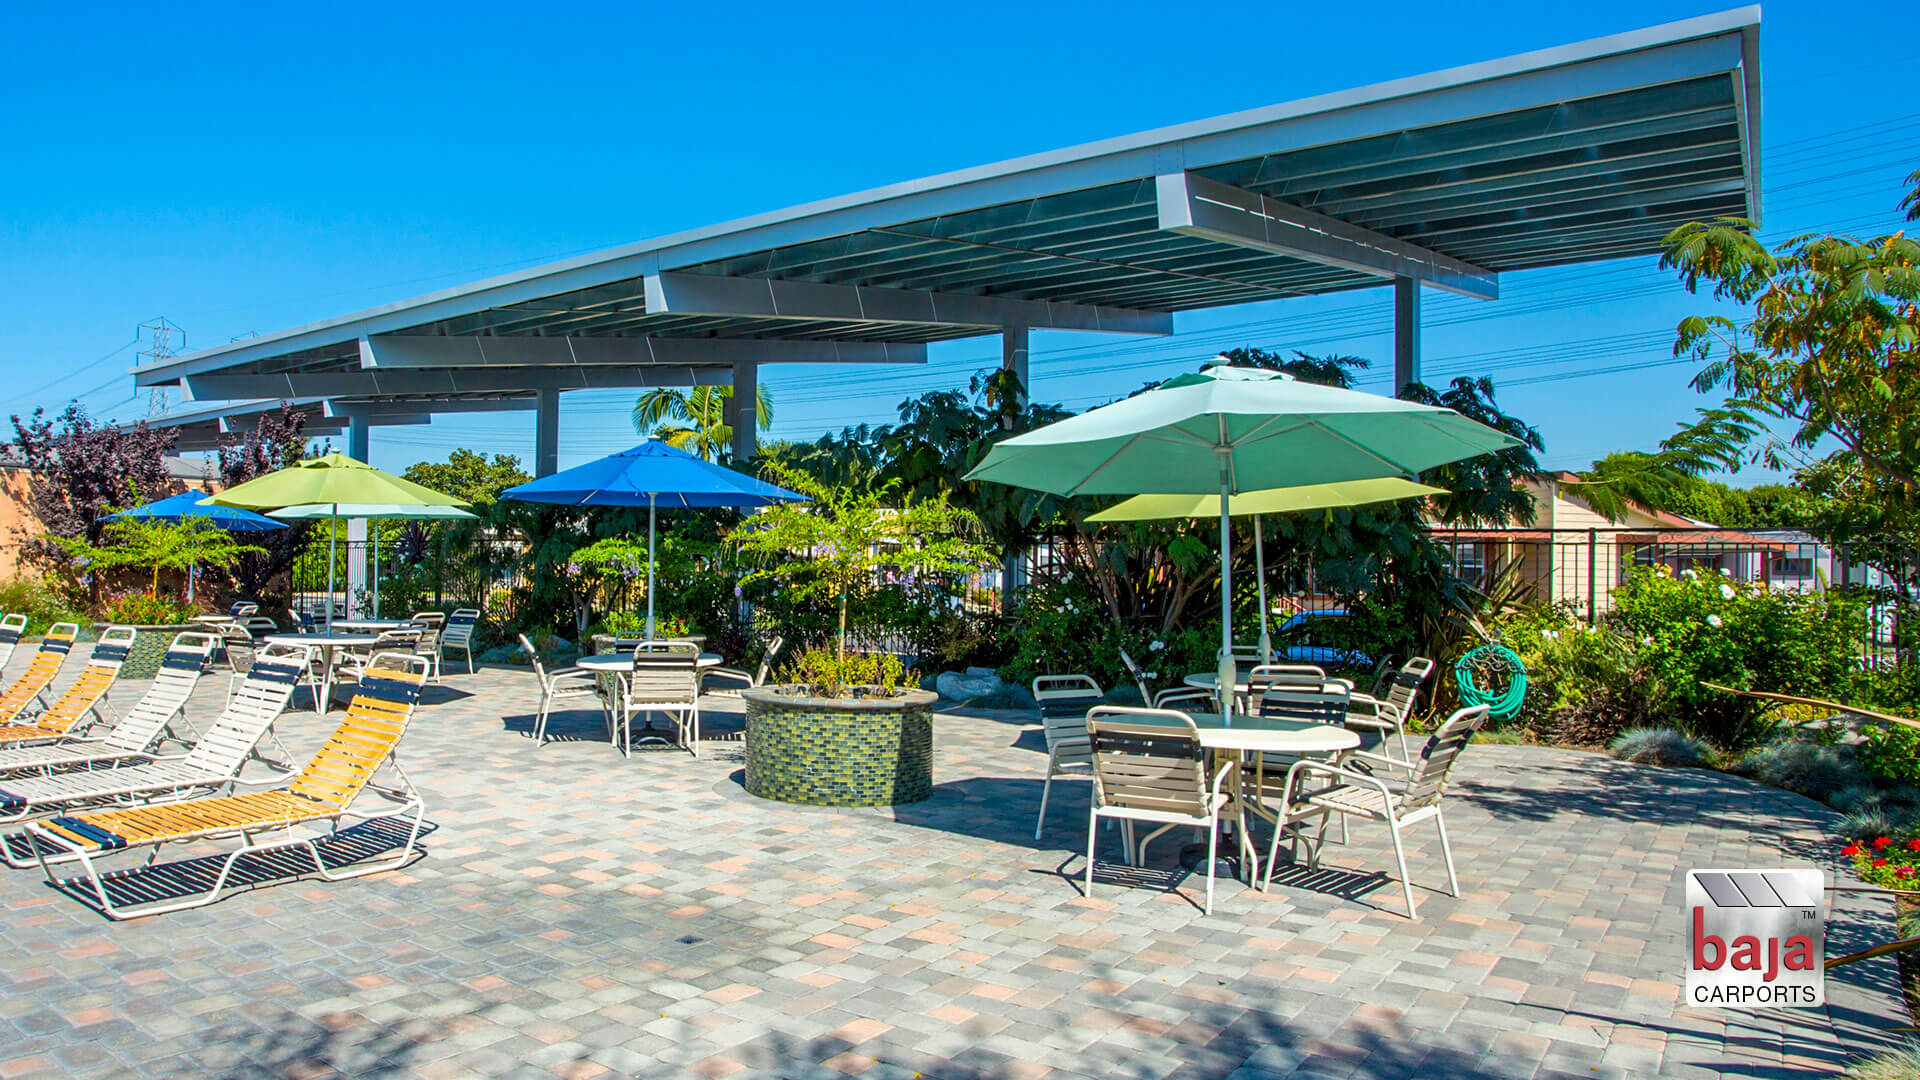 More Community pools using solar shade canopies by baja carports